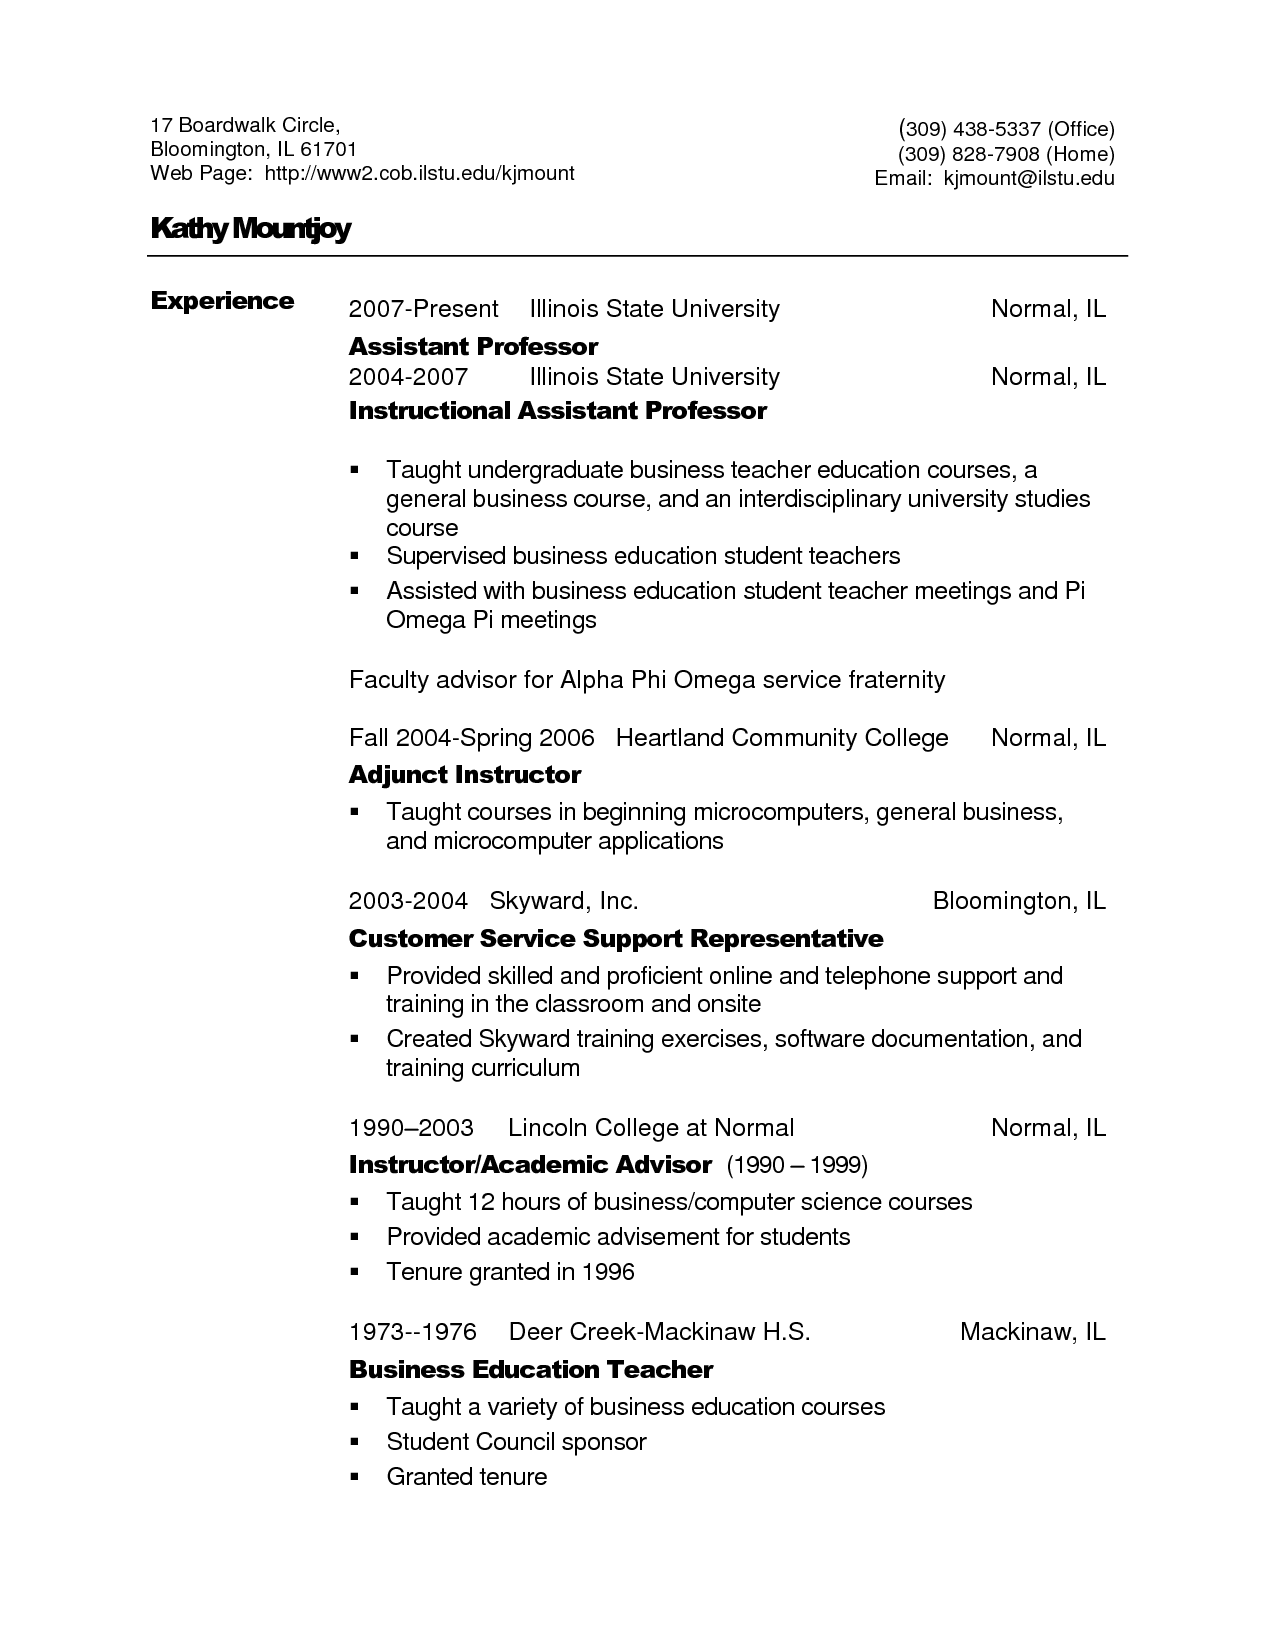 english resume template seeabruzzoresume templates cover letter examples business - Business Resume Templates